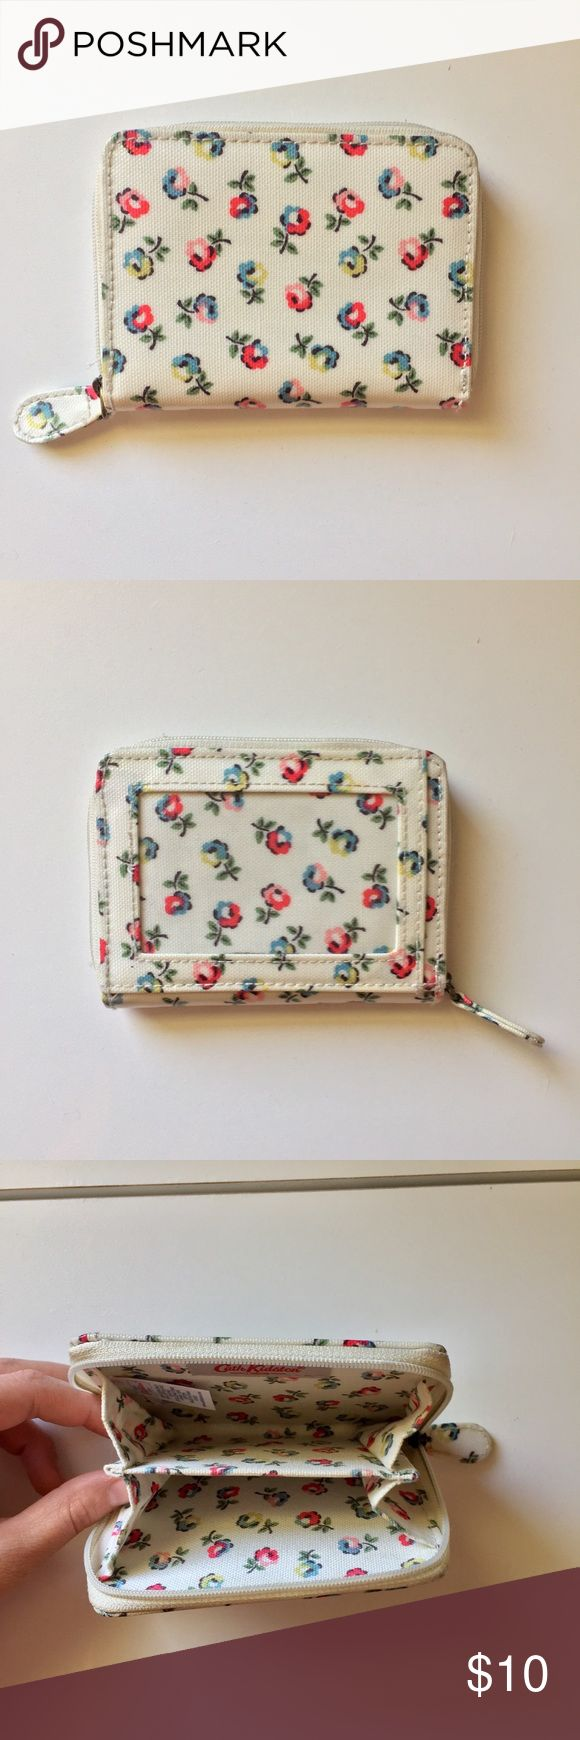 Cath Kidston Wallet Small Cath Kidston Wallet! I bought this in London a few years ago and only used it a few times! It is still in great condition!  Make me an offer!! Cath Kidston Bags Wallets